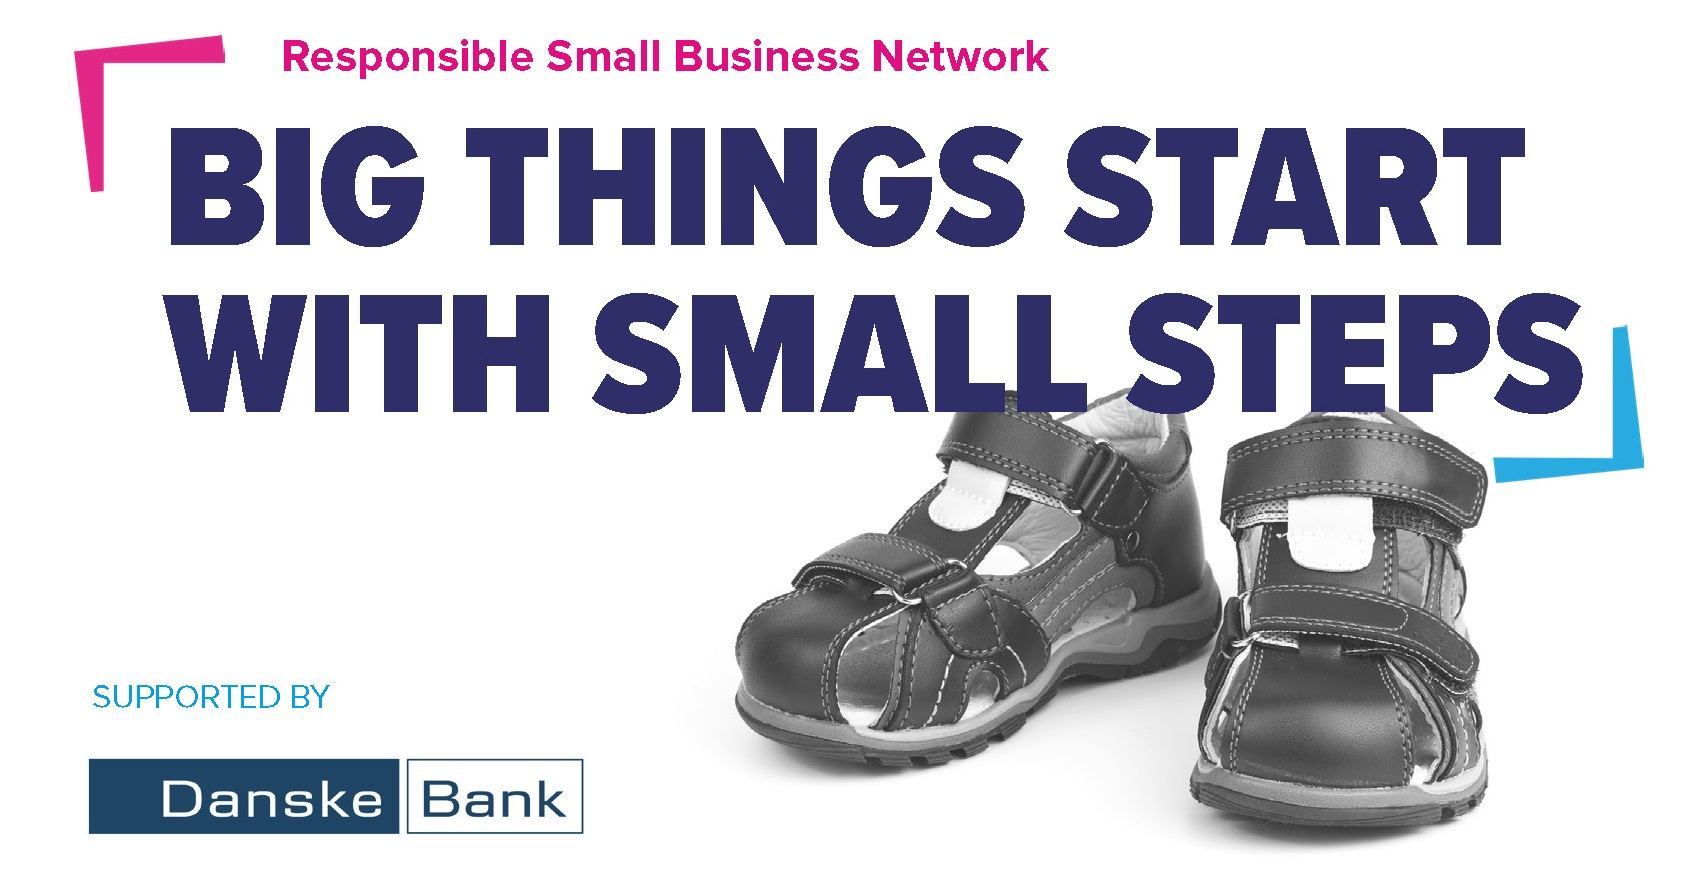 Responsible Small Business Breakfast